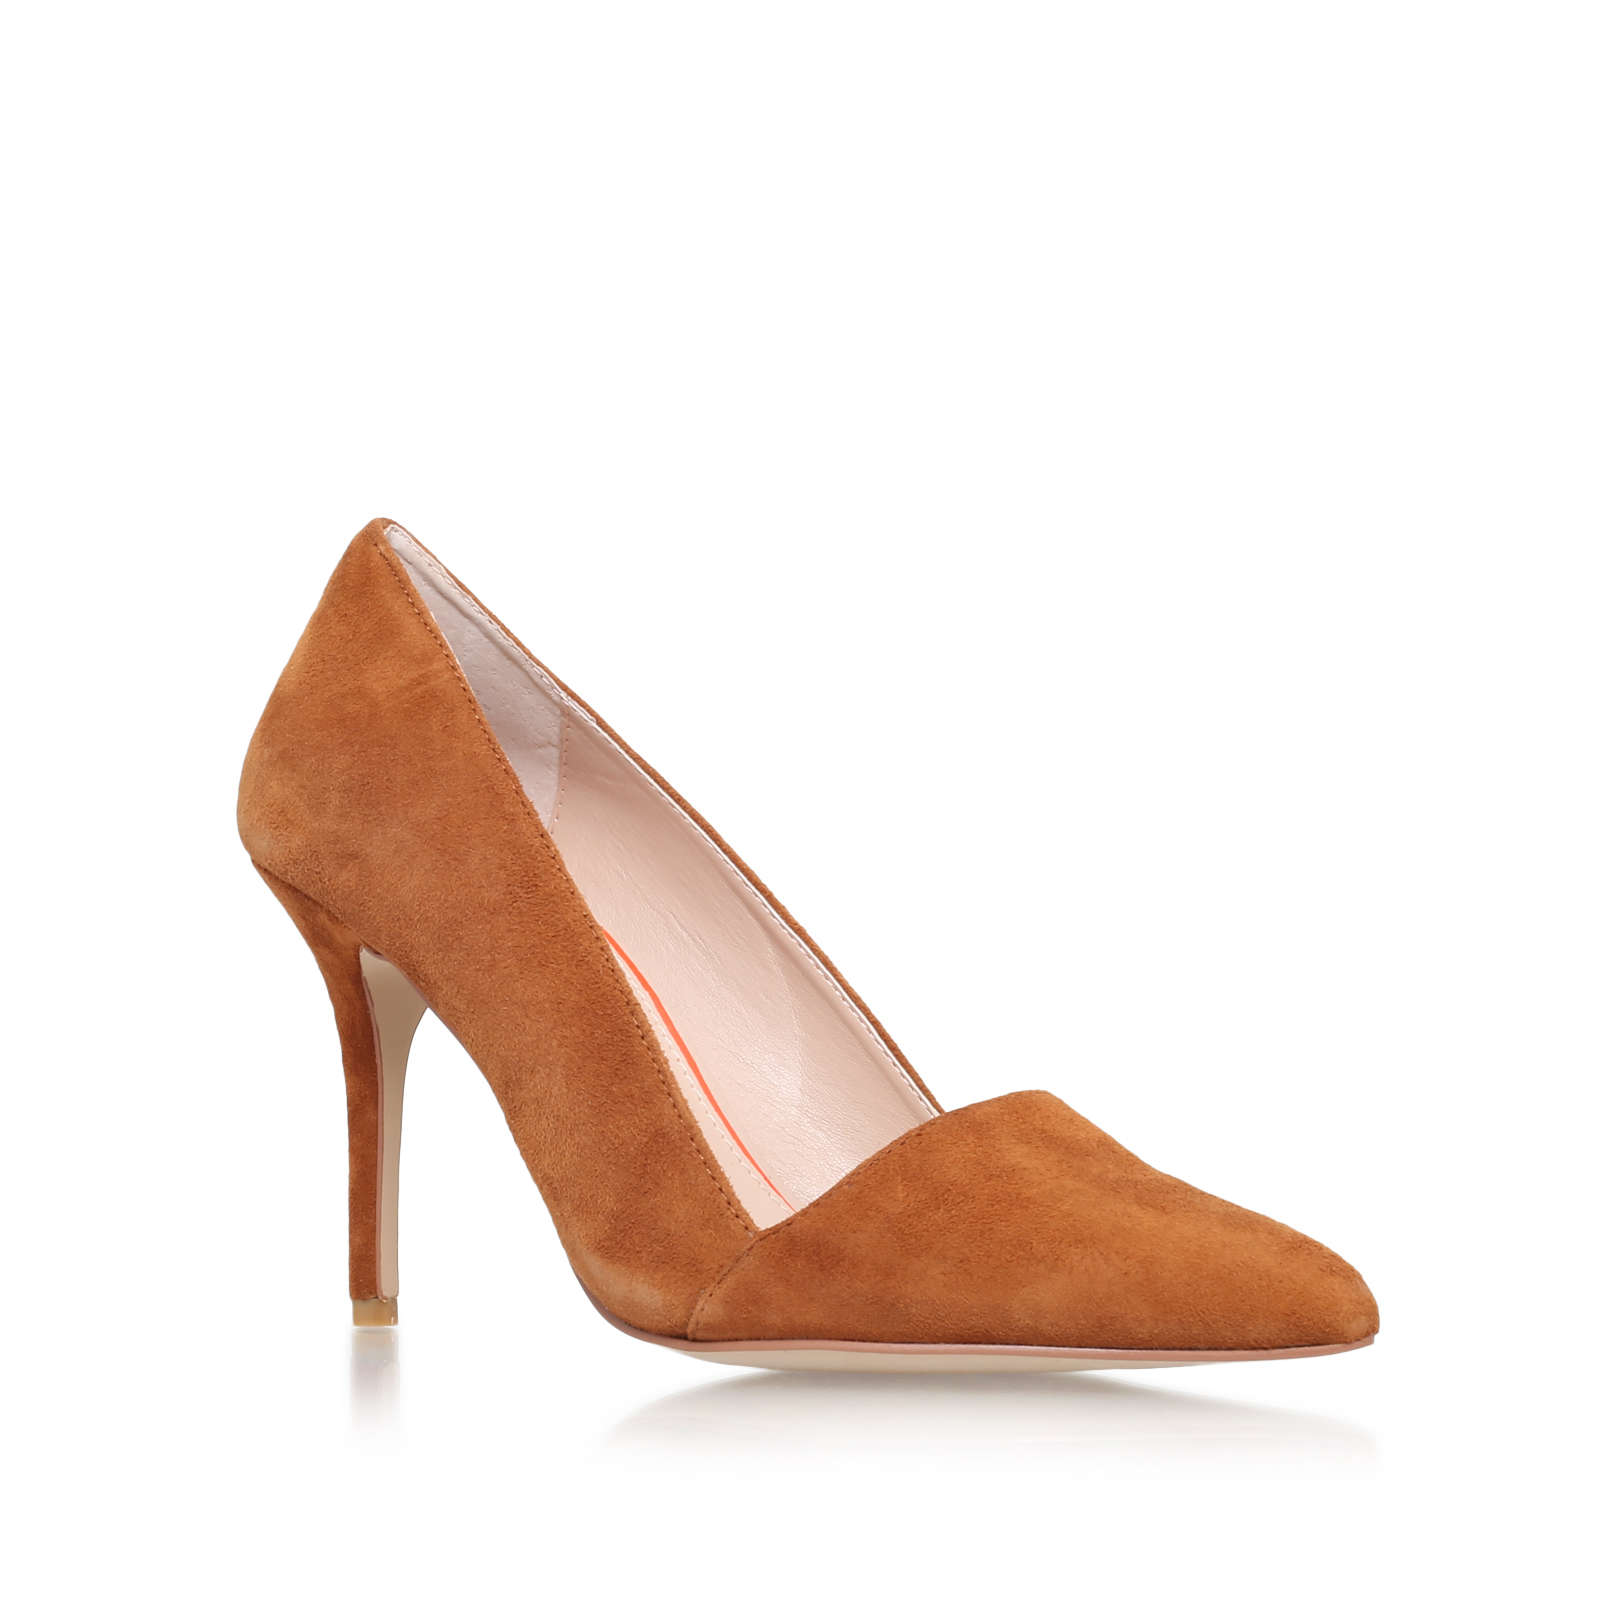 Tan Court Shoes Low Heel